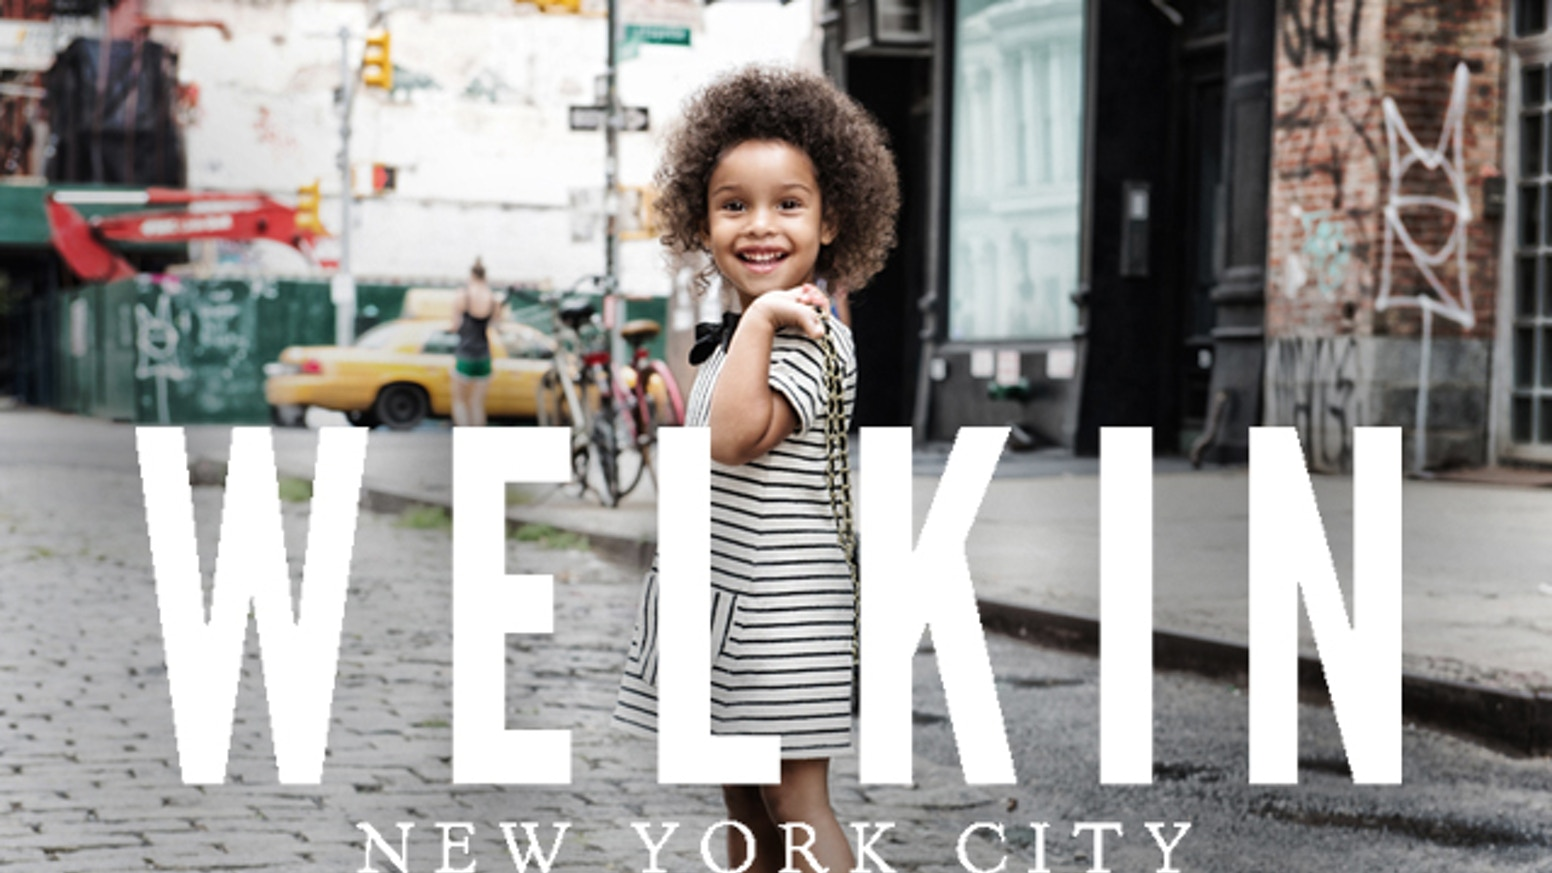 Welkin Nyc Children S Clothing By The City For